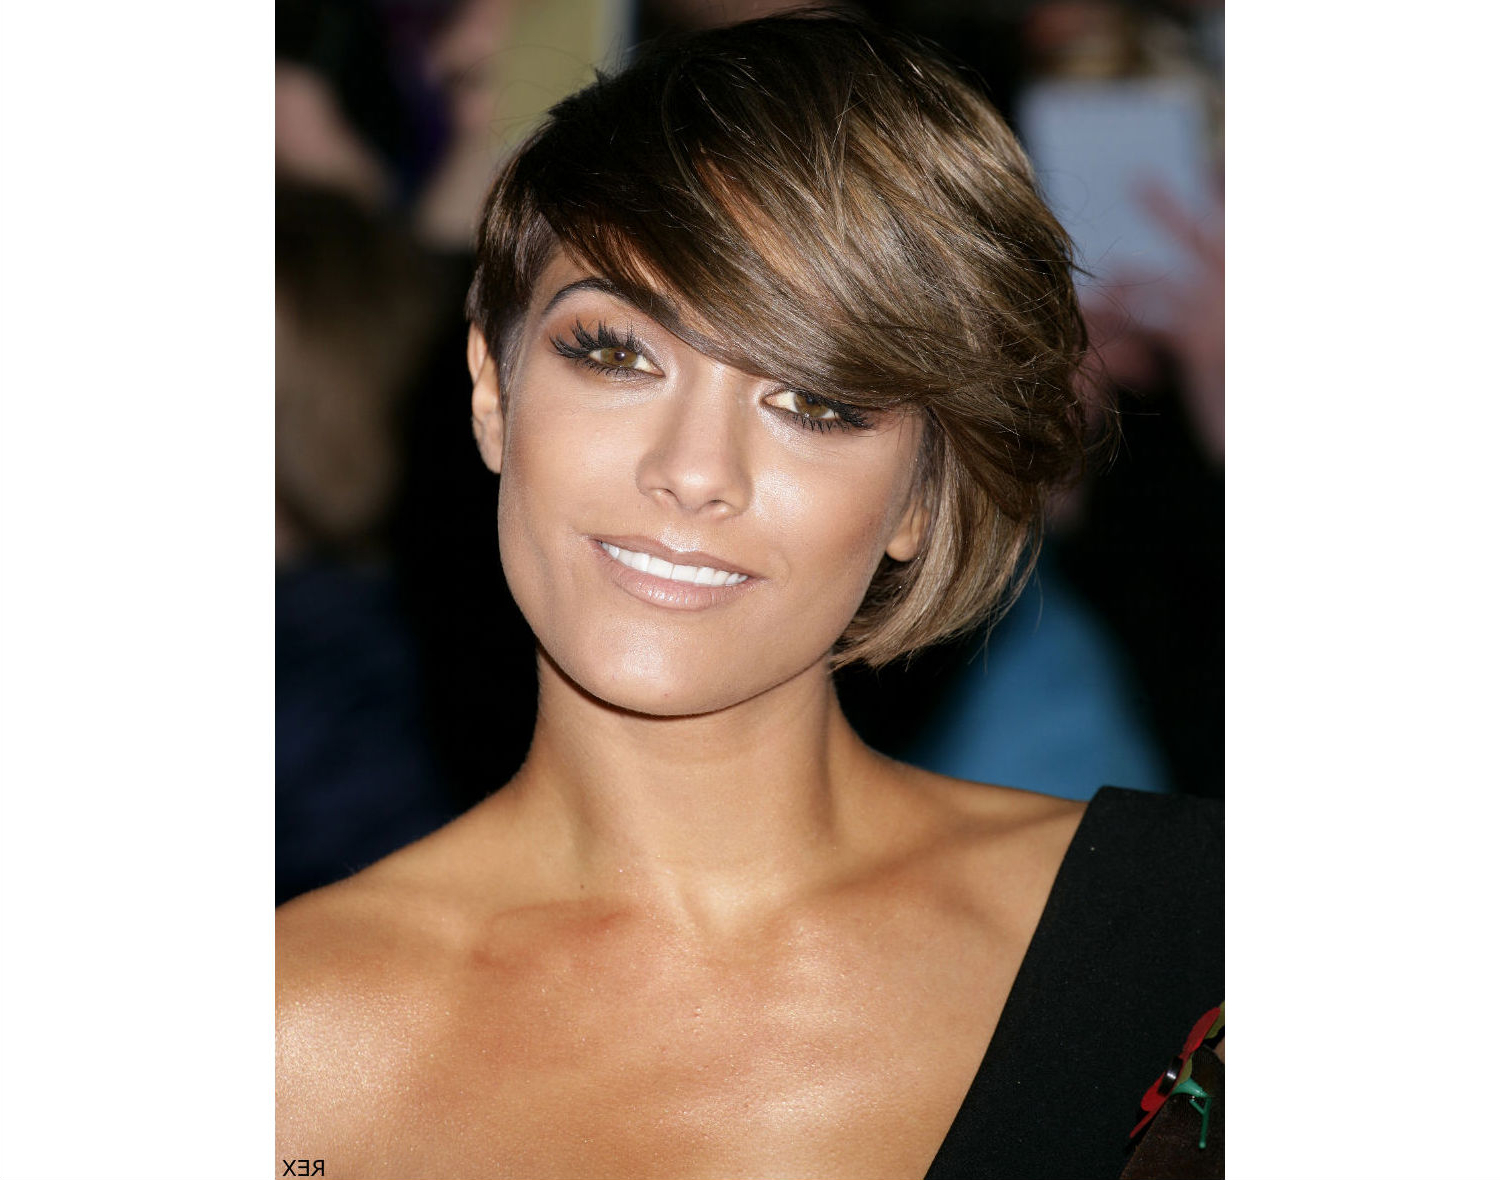 Ideas Of Short Hairstyles For Oval Faces With Regard To Short Haircuts For Black Women With Oval Faces (View 7 of 25)